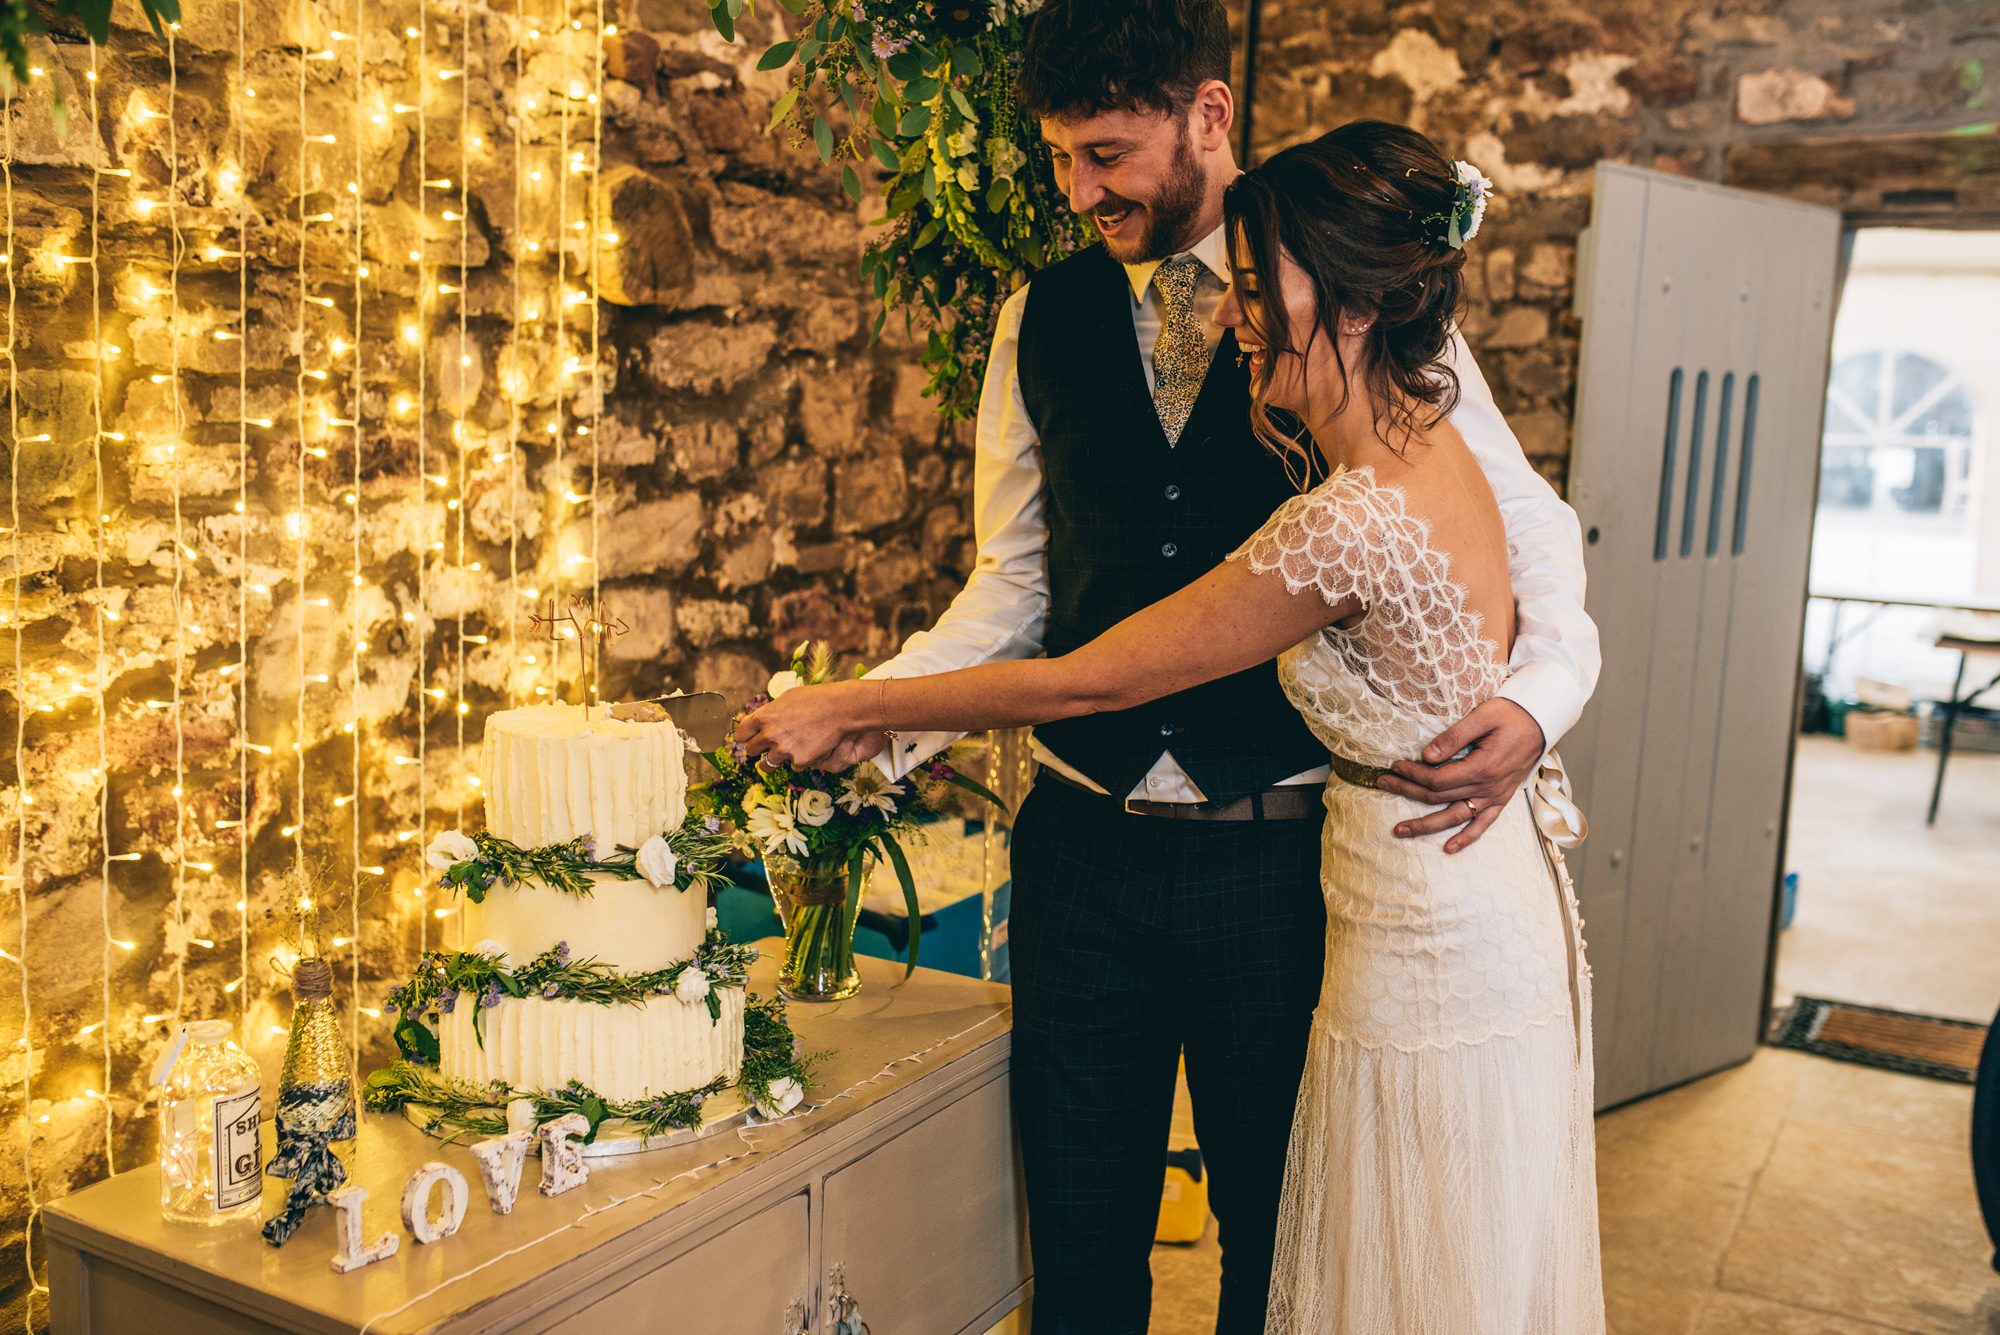 Kate-Beaumont-Sheffield-Lucy-Bohemian-Lace-Dress-Barn-Wedding-Cumbria-41.jpg